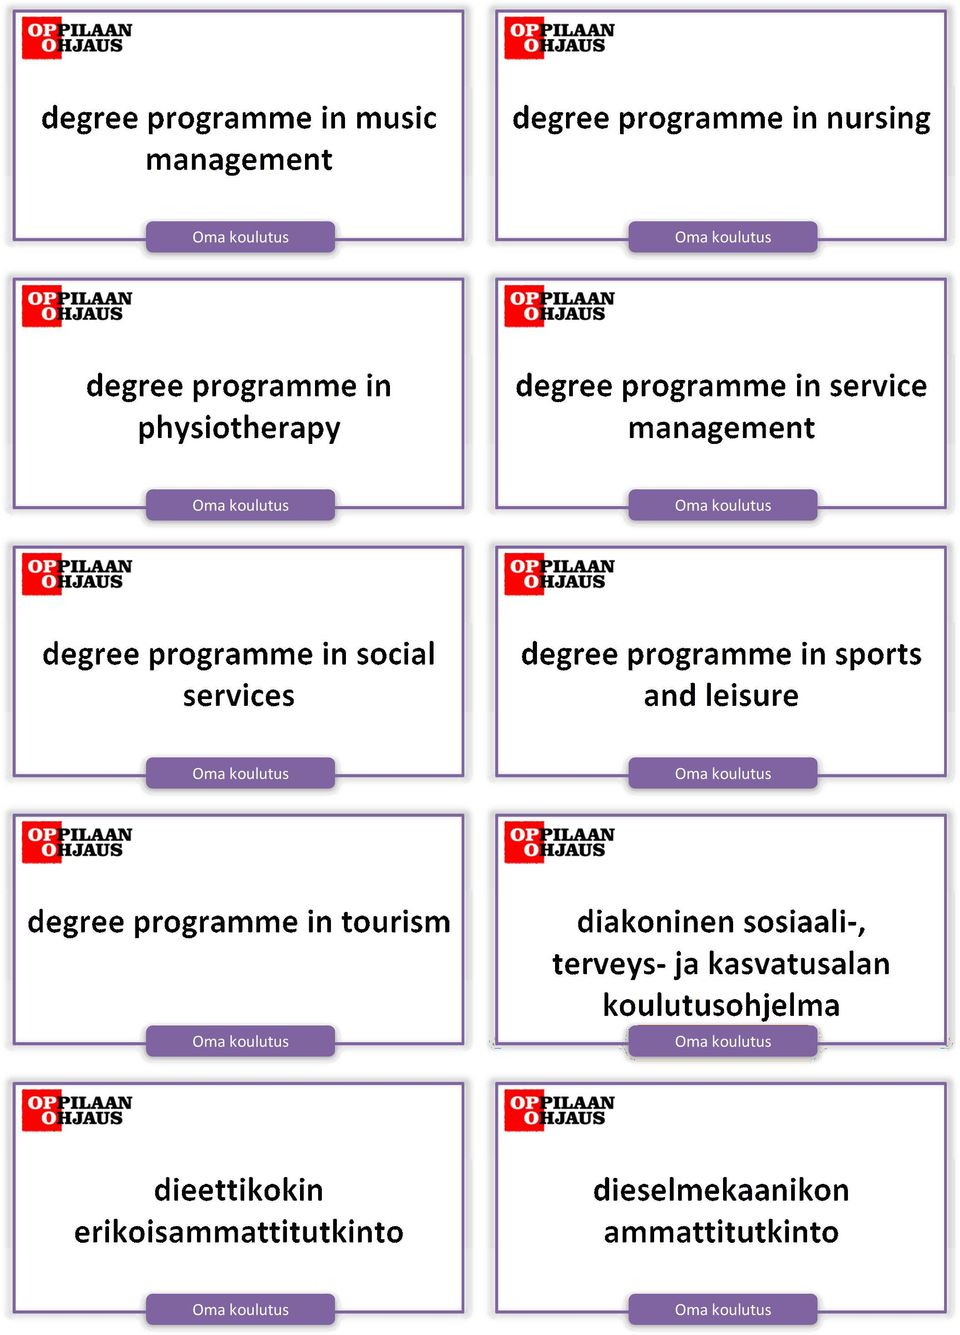 social services degree programme in sports and leisure degree programme in